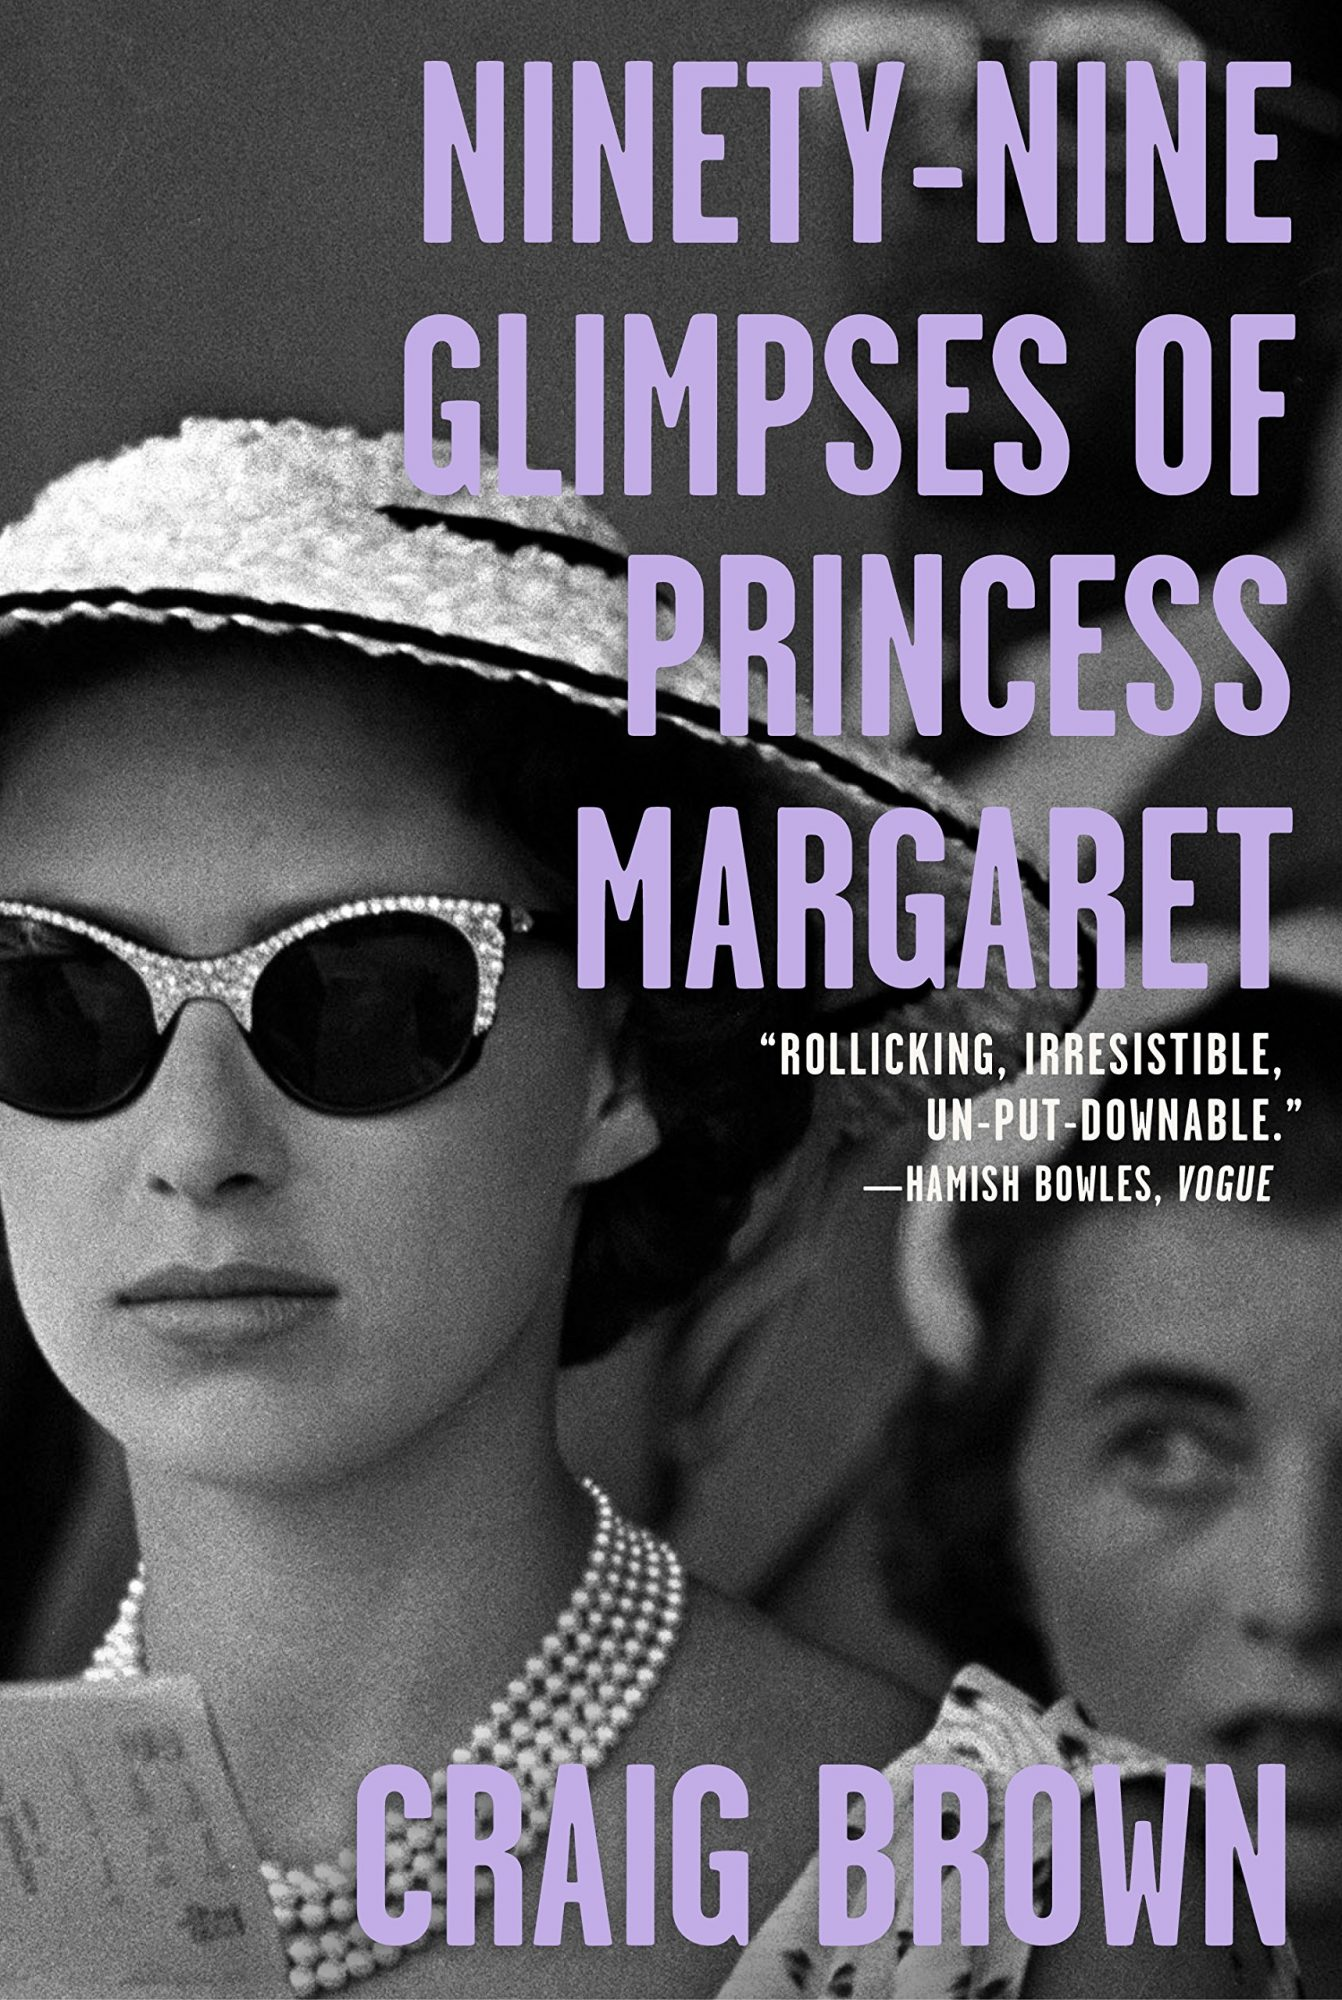 Fans of The Crown Will Adore This New Book